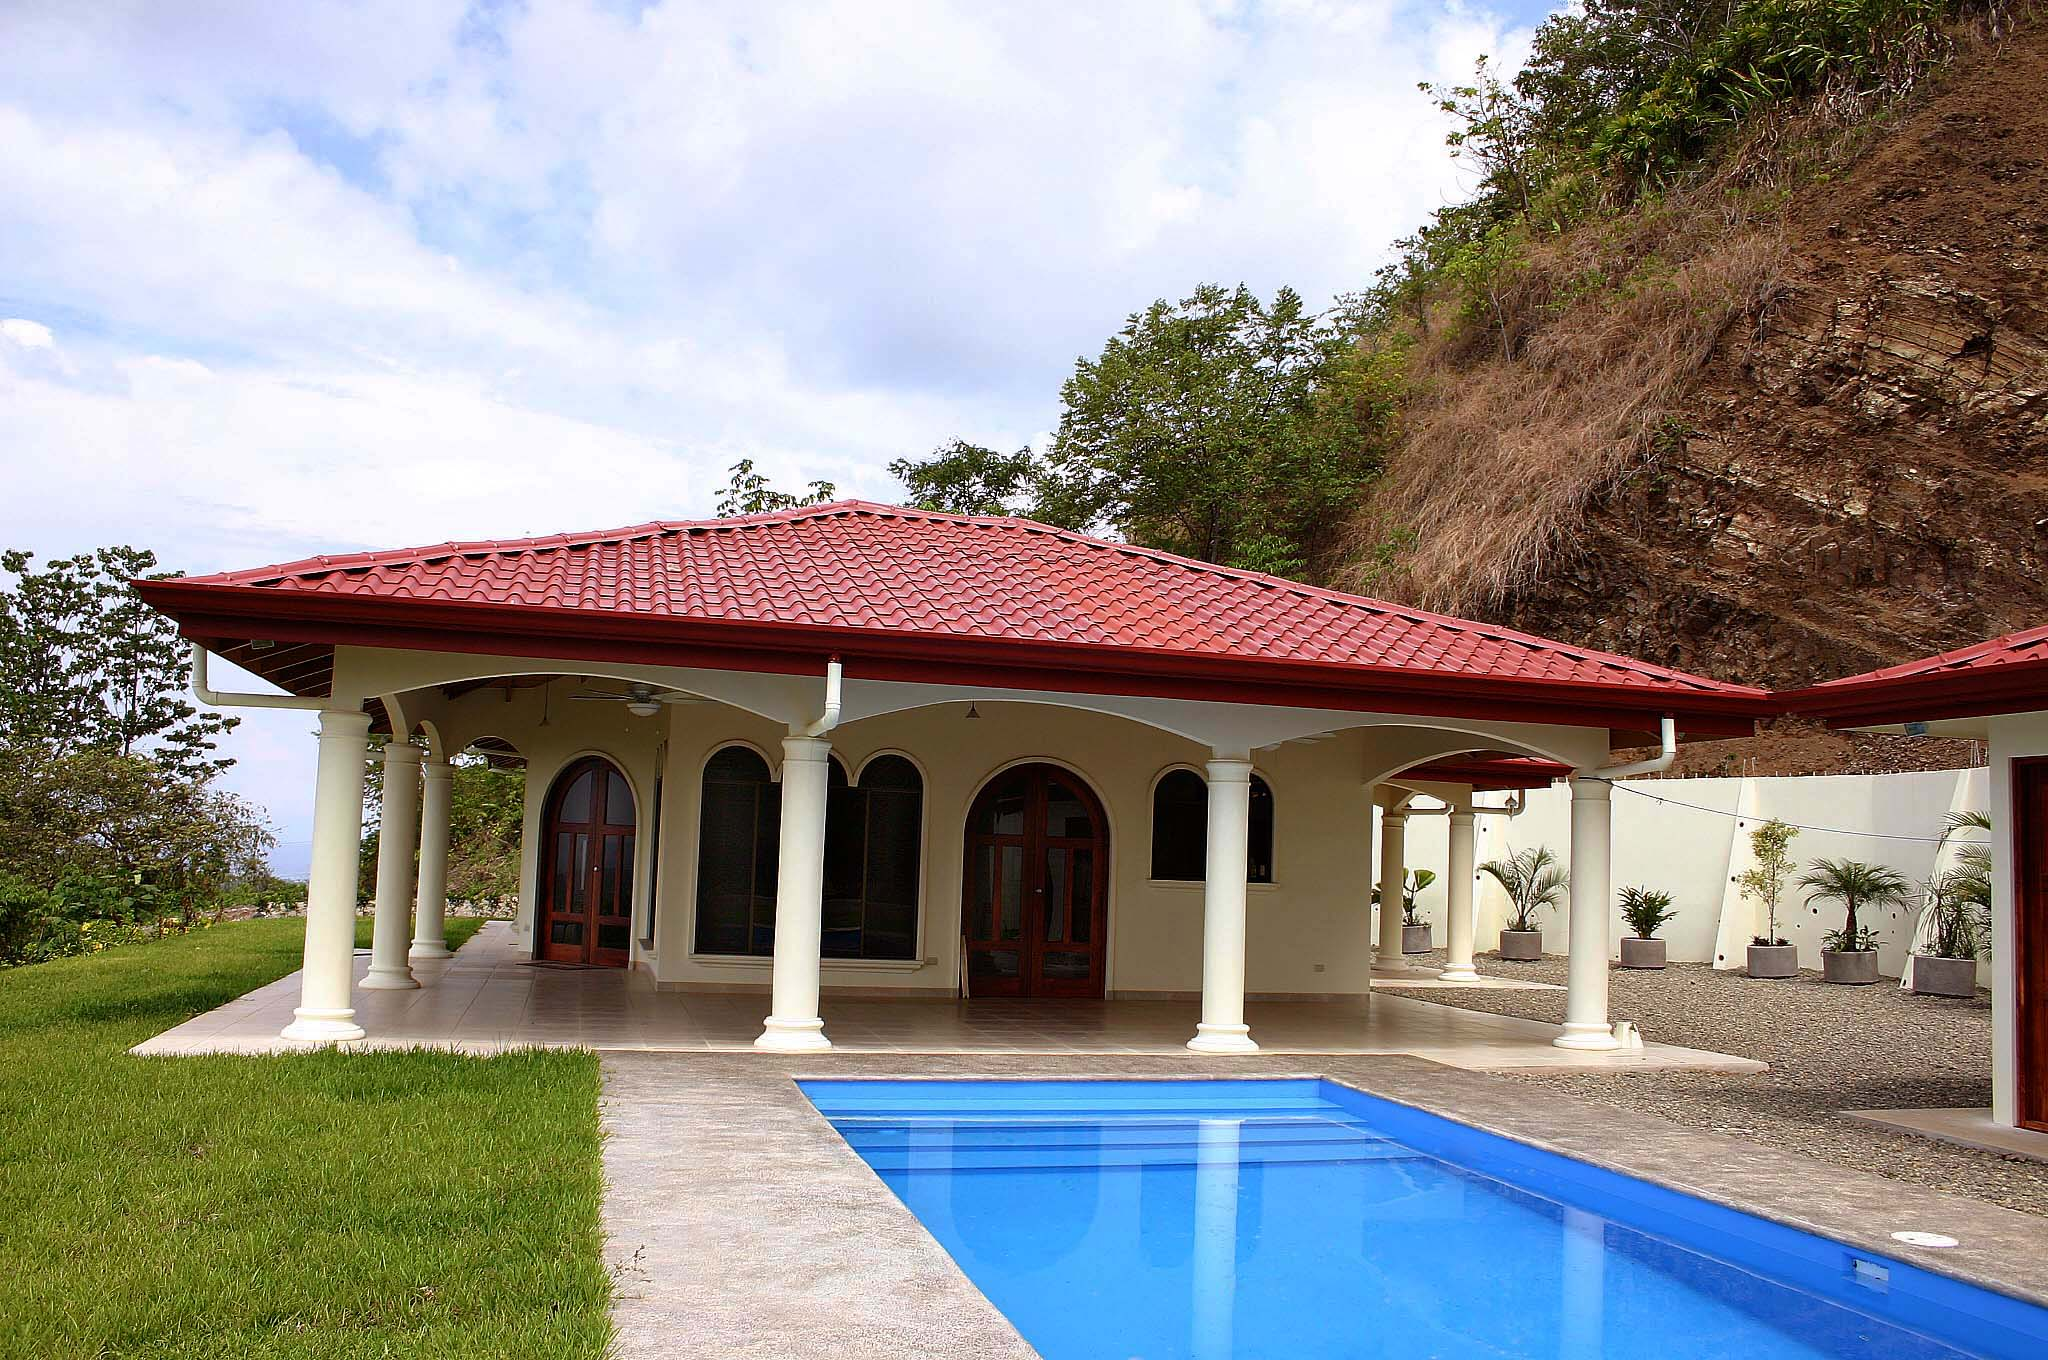 Costa rica pictures of homes interiors property in costa for Vacation homes for rent in costa rica